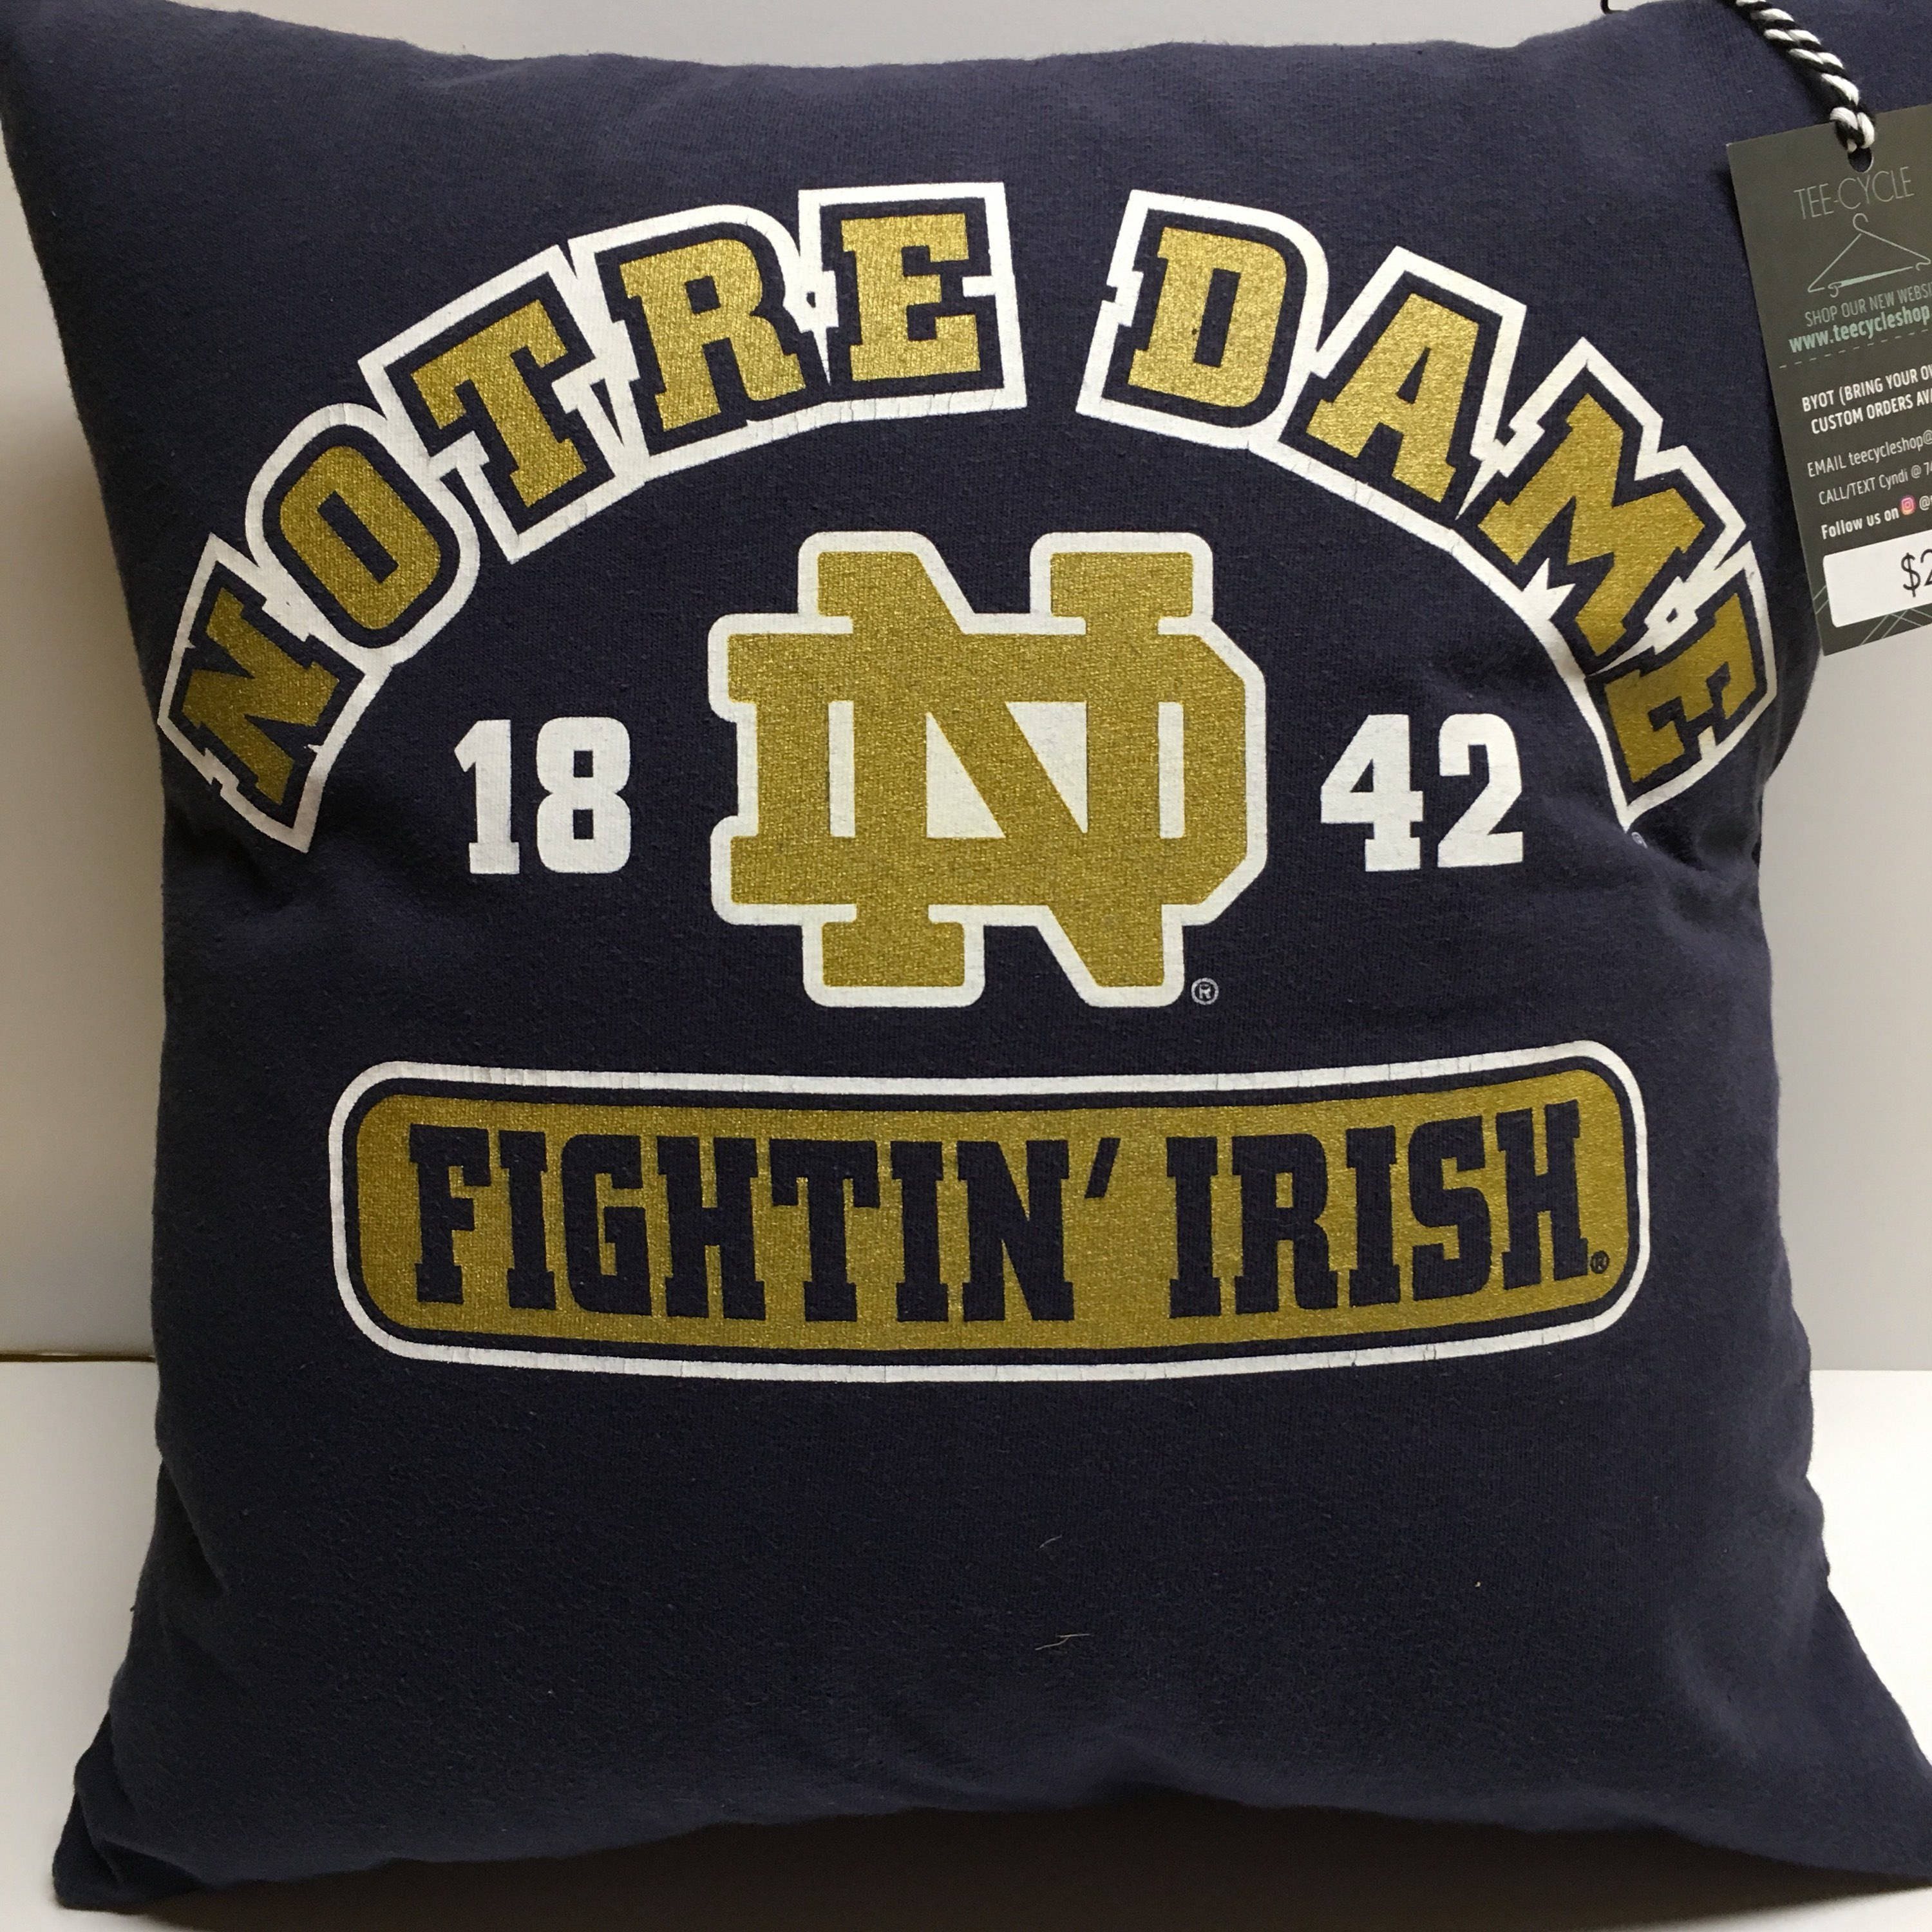 South Bend, Indiana University Football Tshirt Pillow 16x16 Upcycled One Of  A Kind